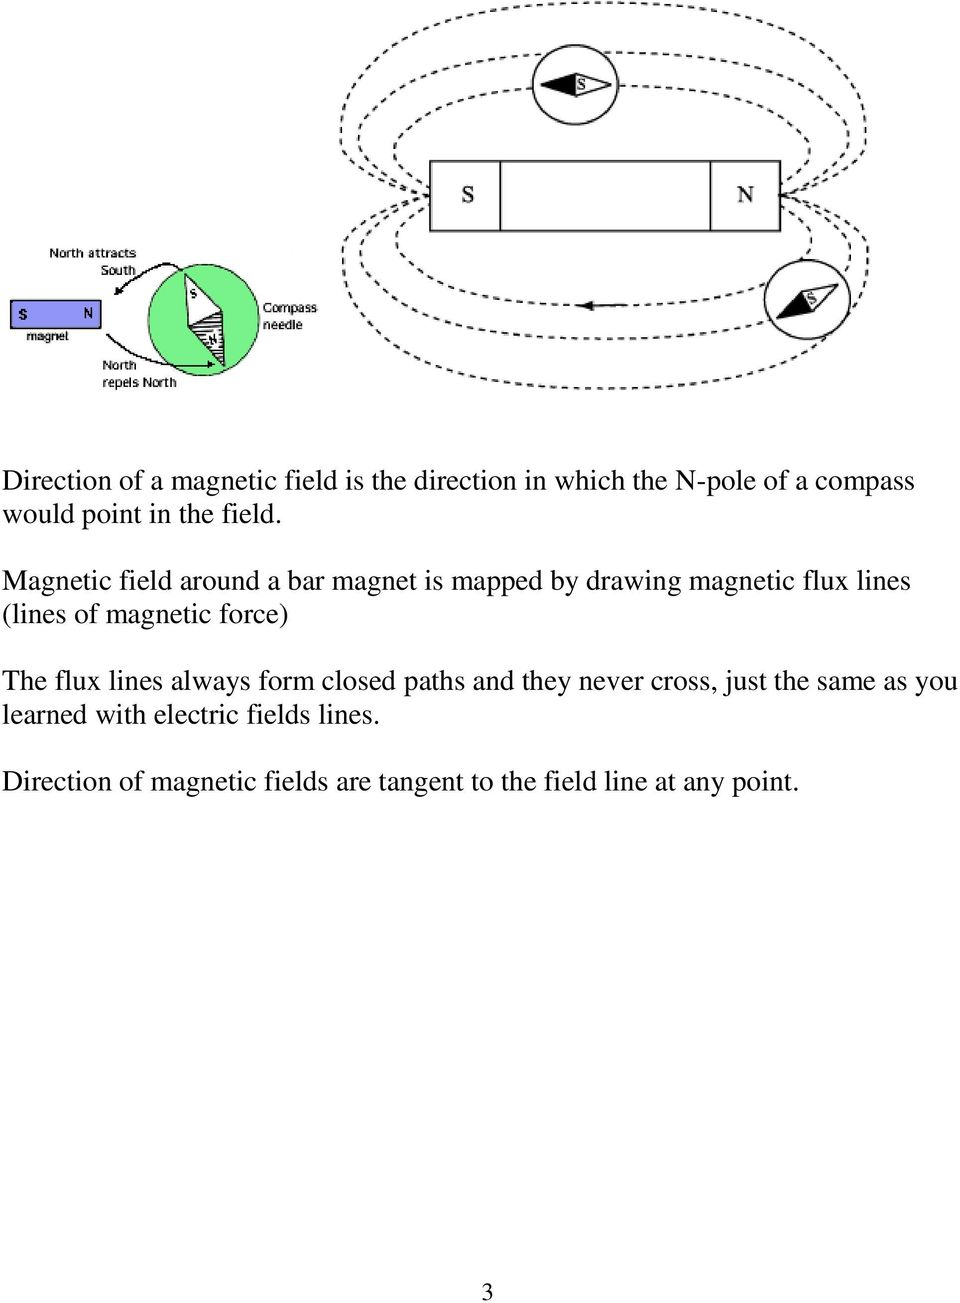 Magnetic field around a bar magnet is mapped by drawing magnetic flux lines (lines of magnetic